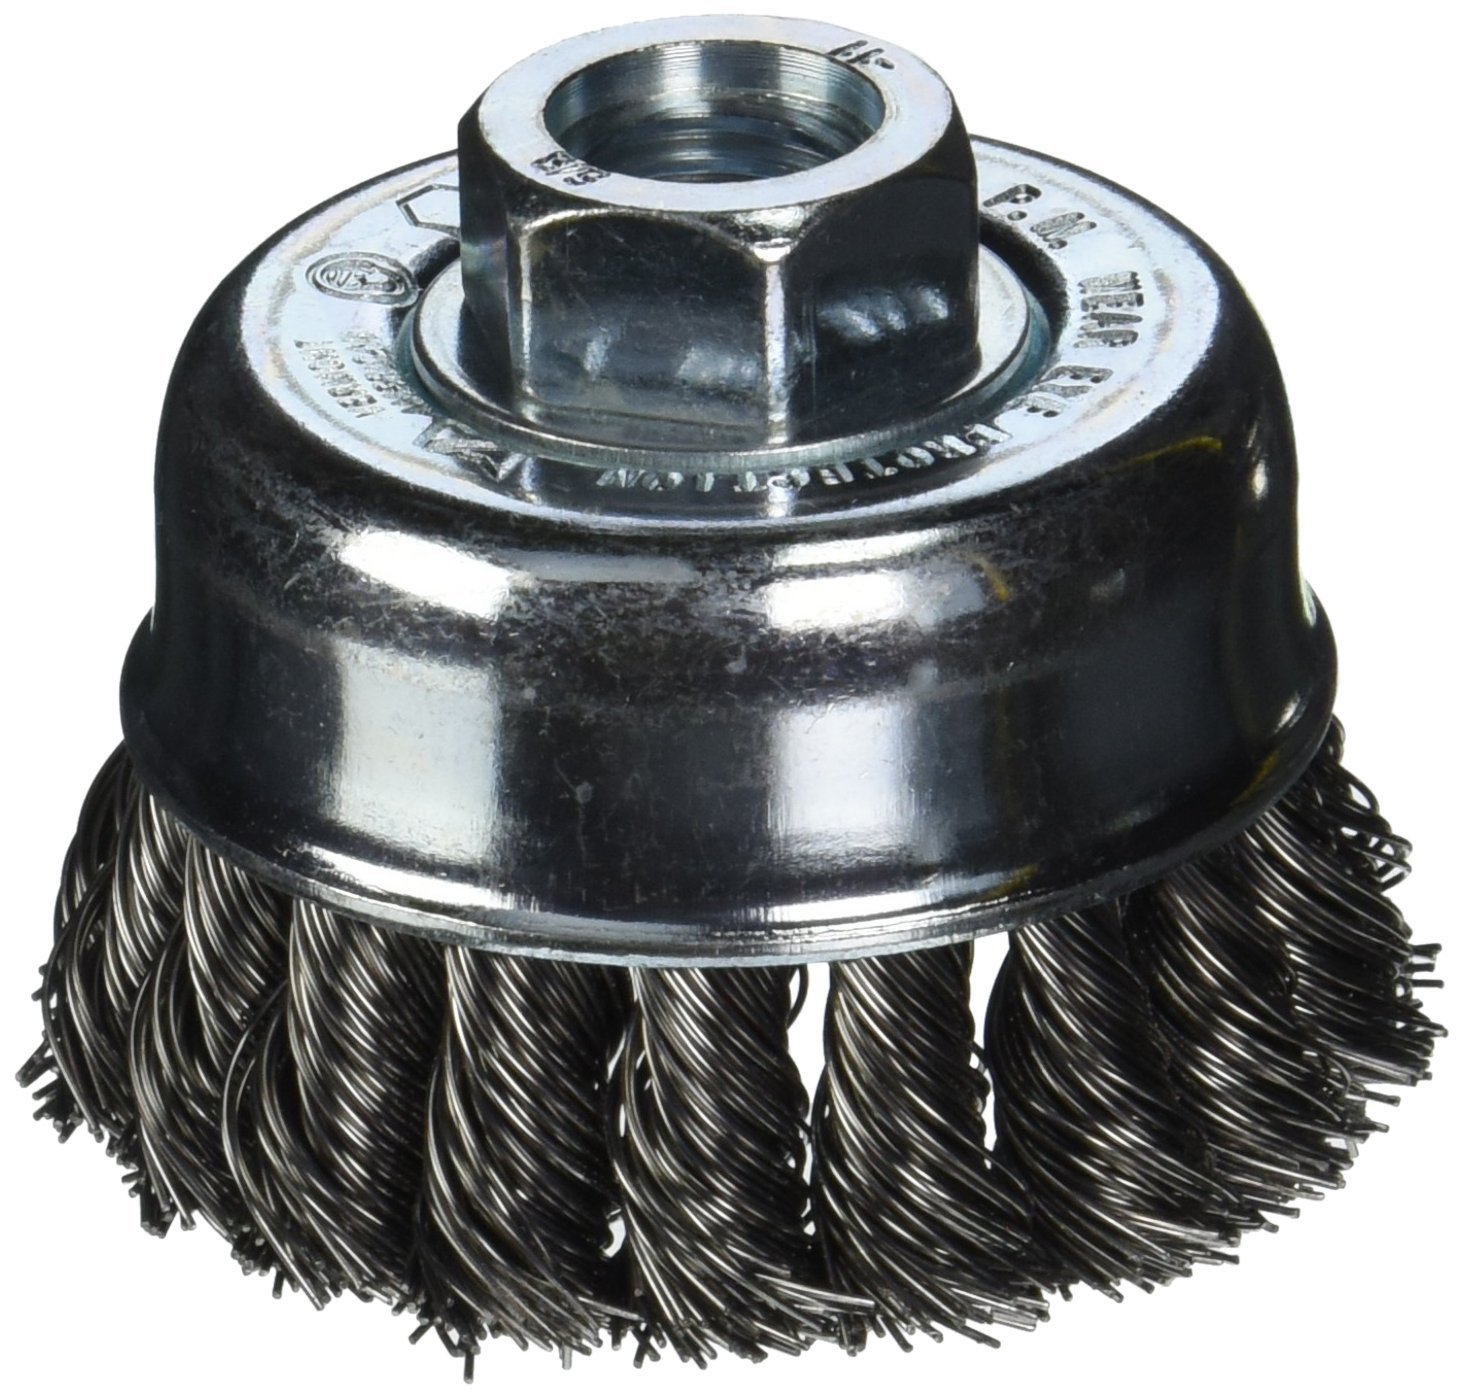 Vermont American 16830 3-Inch Knotted Wire Cup Brush with 5//8-Inch Arbor